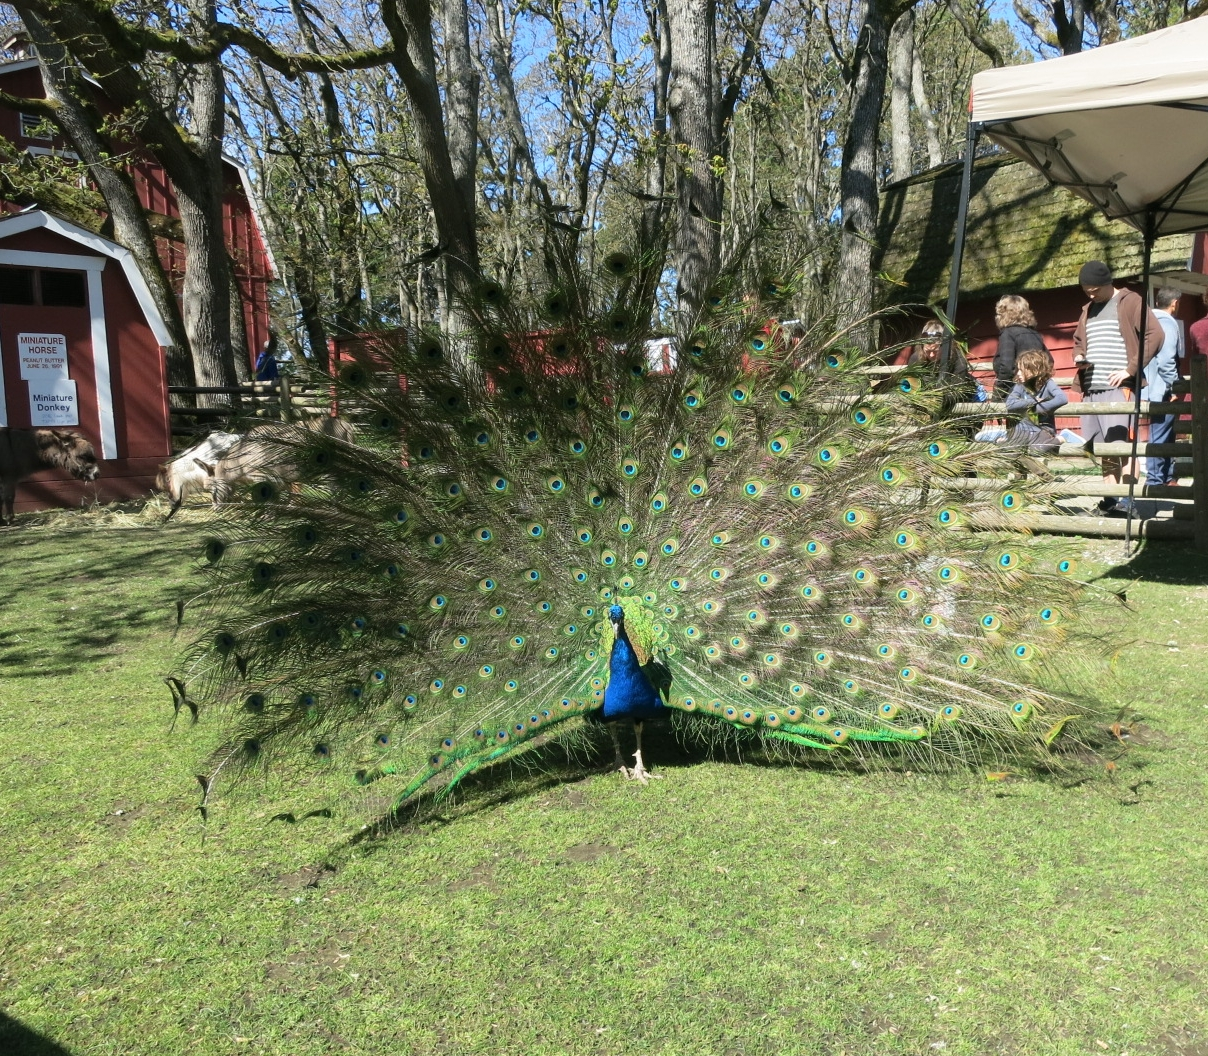 Stunning male peacock displaying his feathers